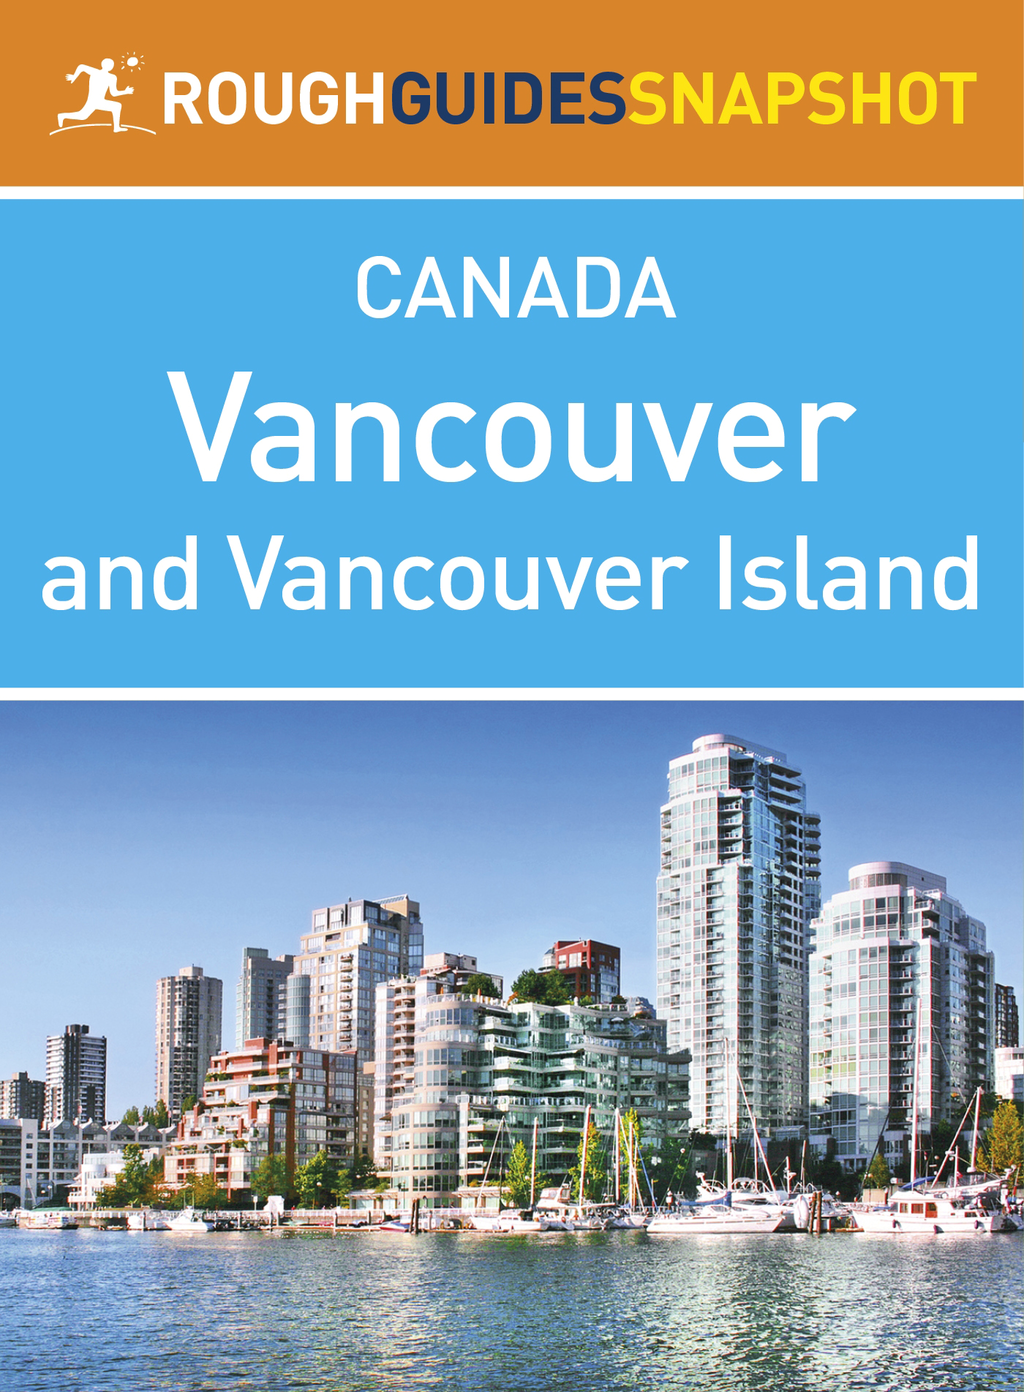 Vancouver and Vancouver Island Rough Guides Snapshot Canada (includes The Sunshine Coast, The Sea to Sky Highway, Whistler, The Cariboo, Victoria, The